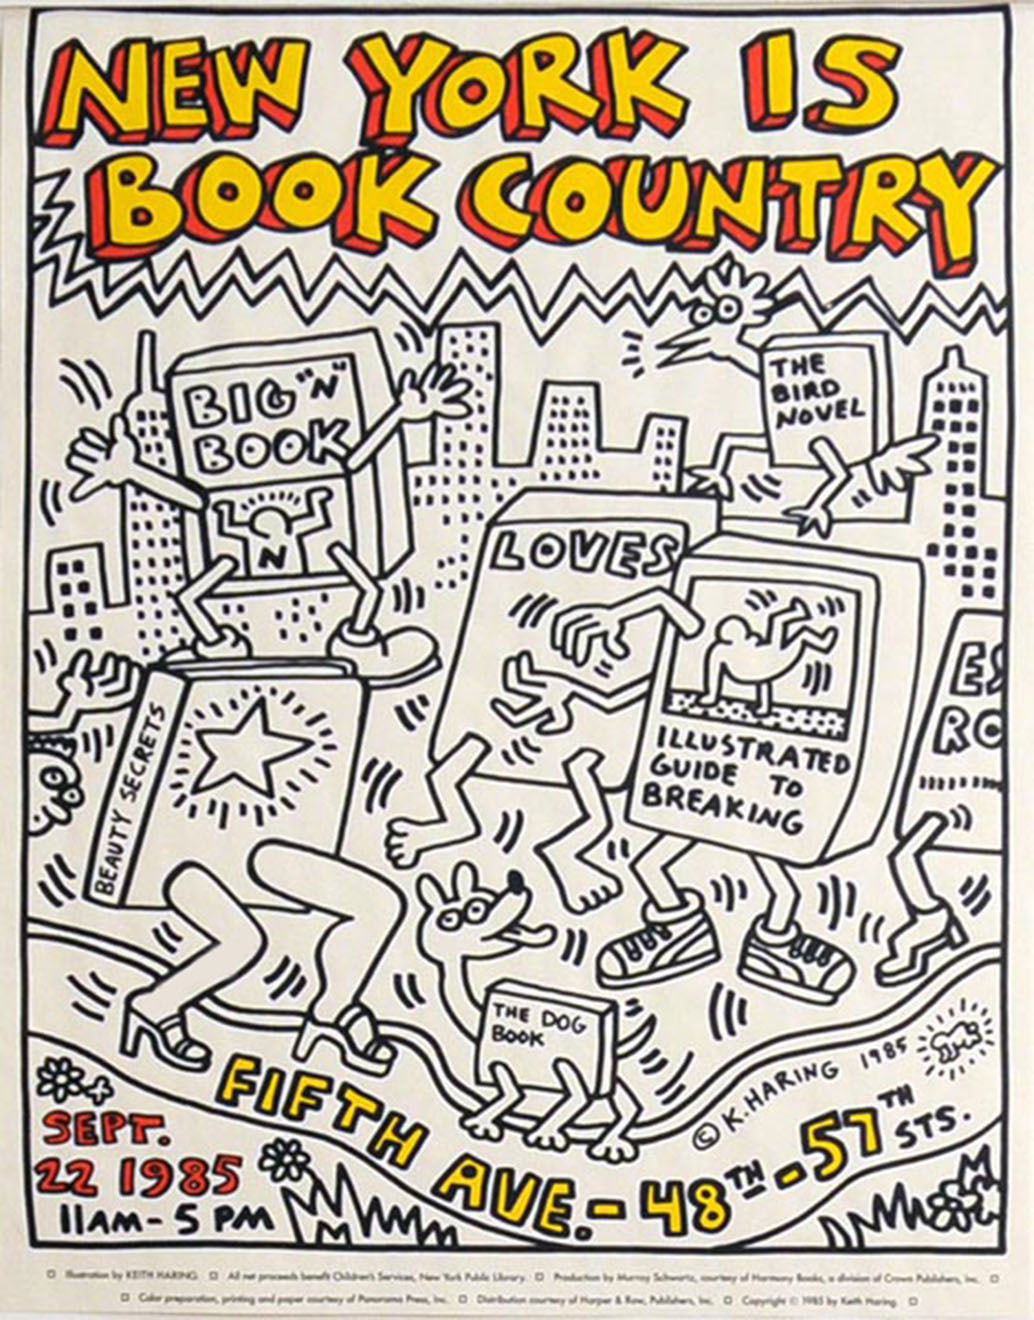 NEW YORK IS BOOK COUNTRY POSTER by Keith Haring